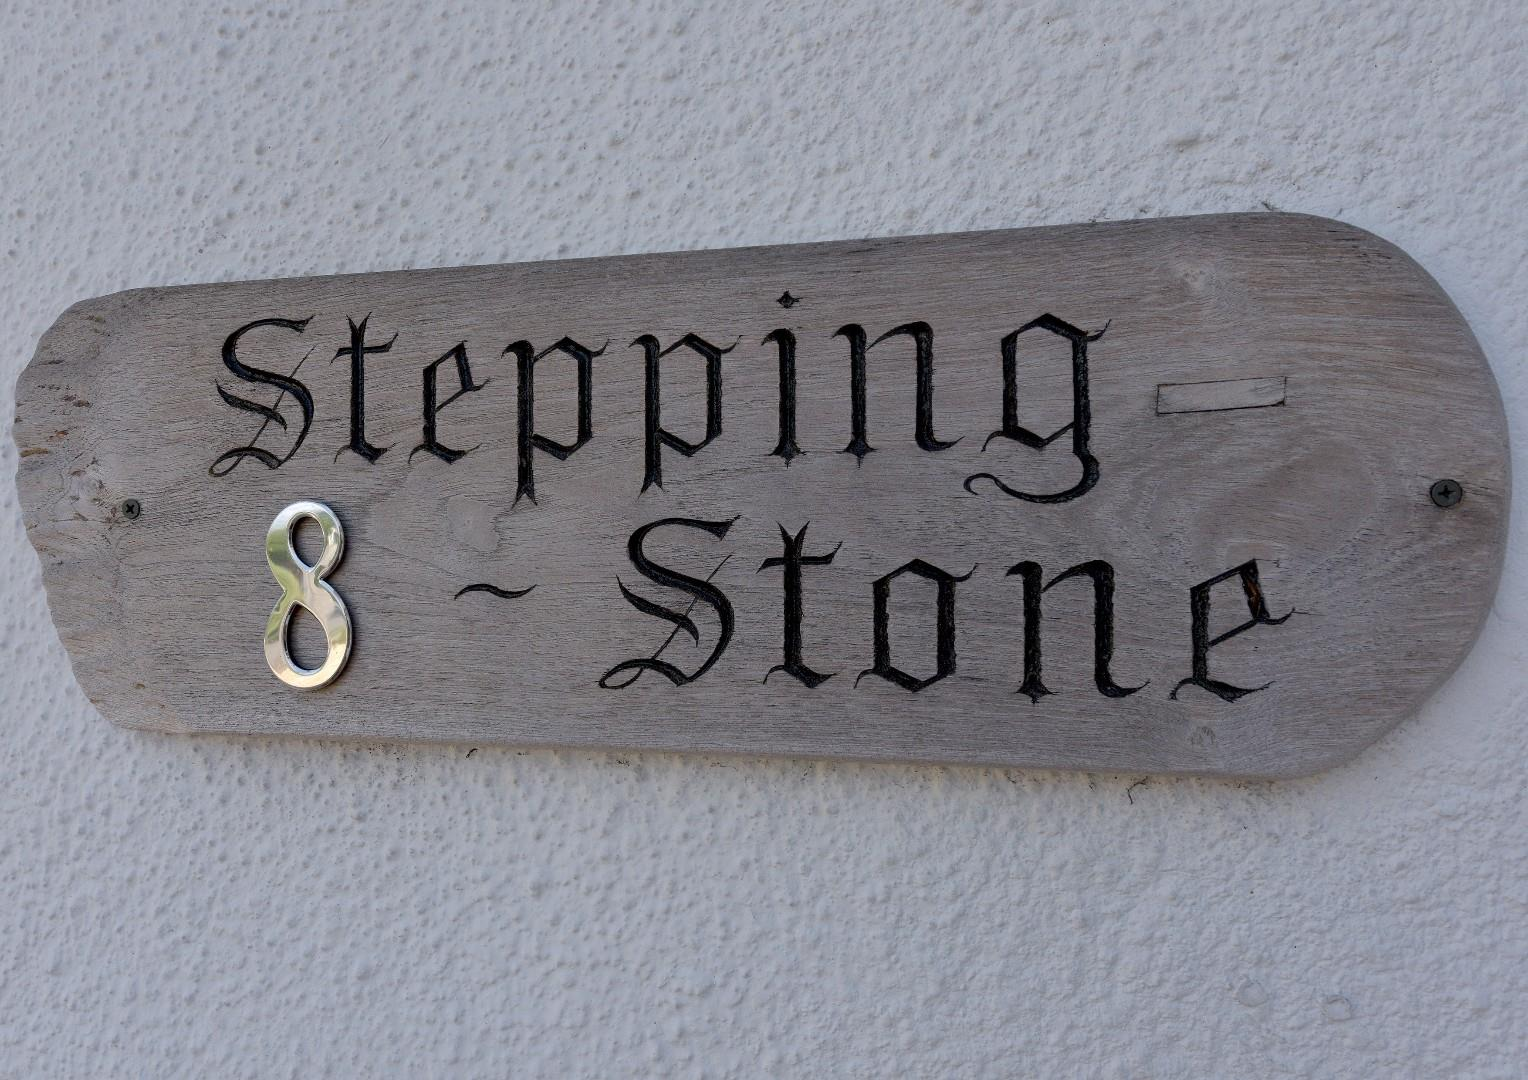 Stepping Stone, Worcester Road, Mustow Green